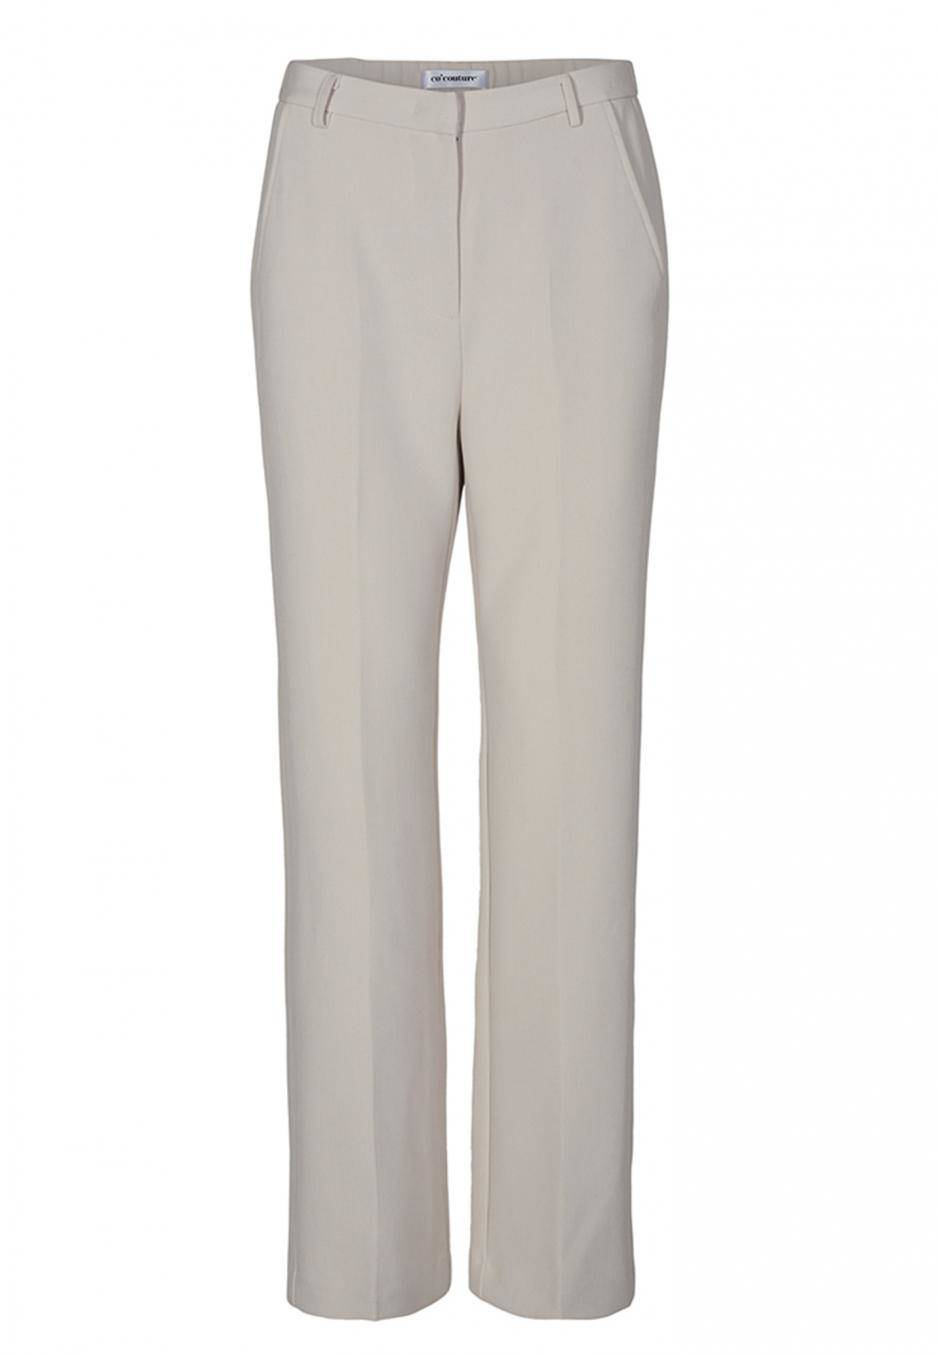 Co'couture Vola Pant